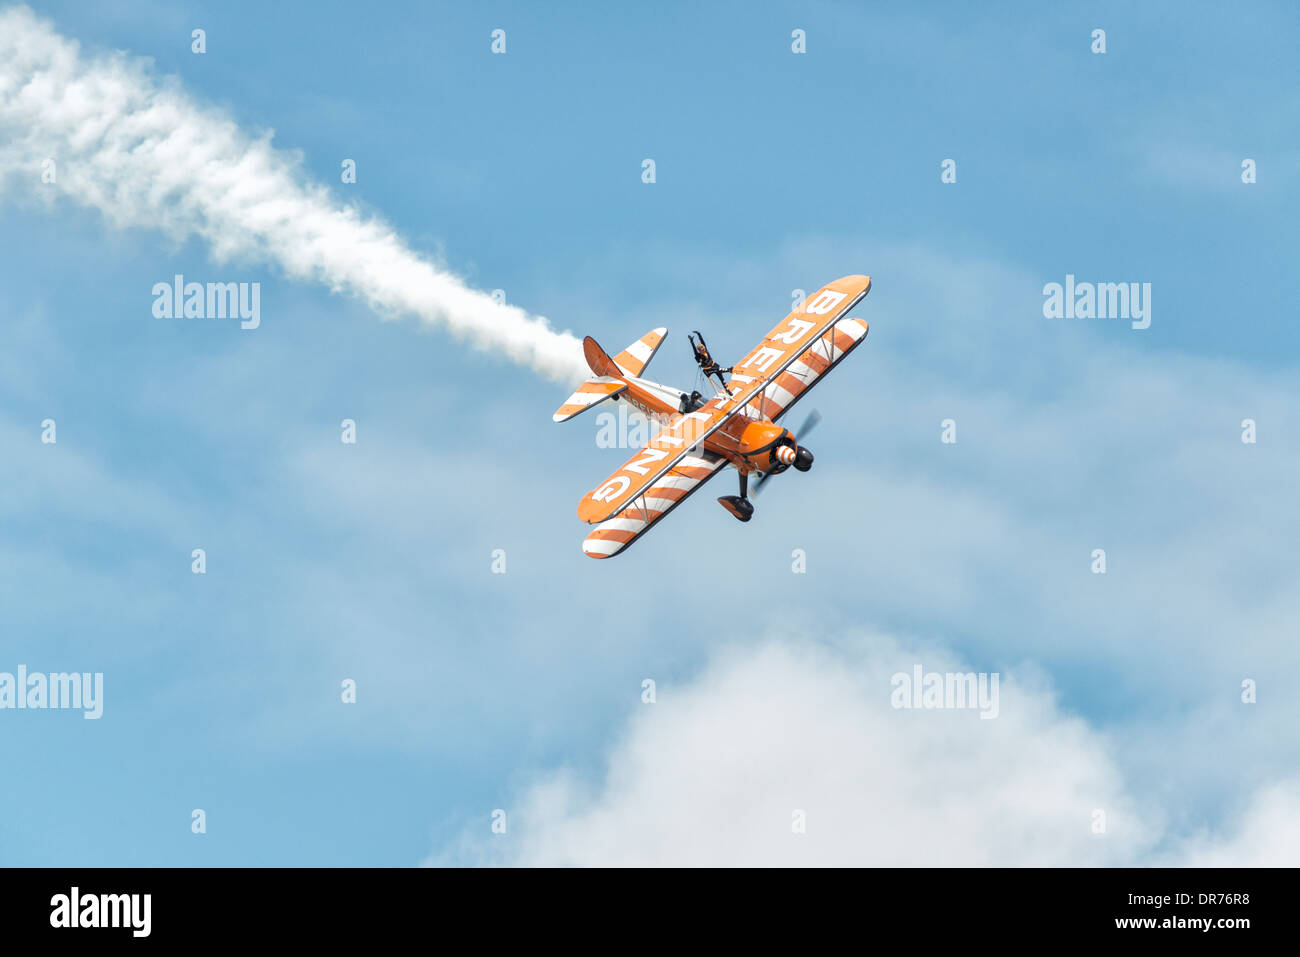 A Boeing Stearman Biplane from the AeroSuperBatics Breitling Wingwalking Team dives out of the sky at the RAF Fairford RIAT - Stock Image